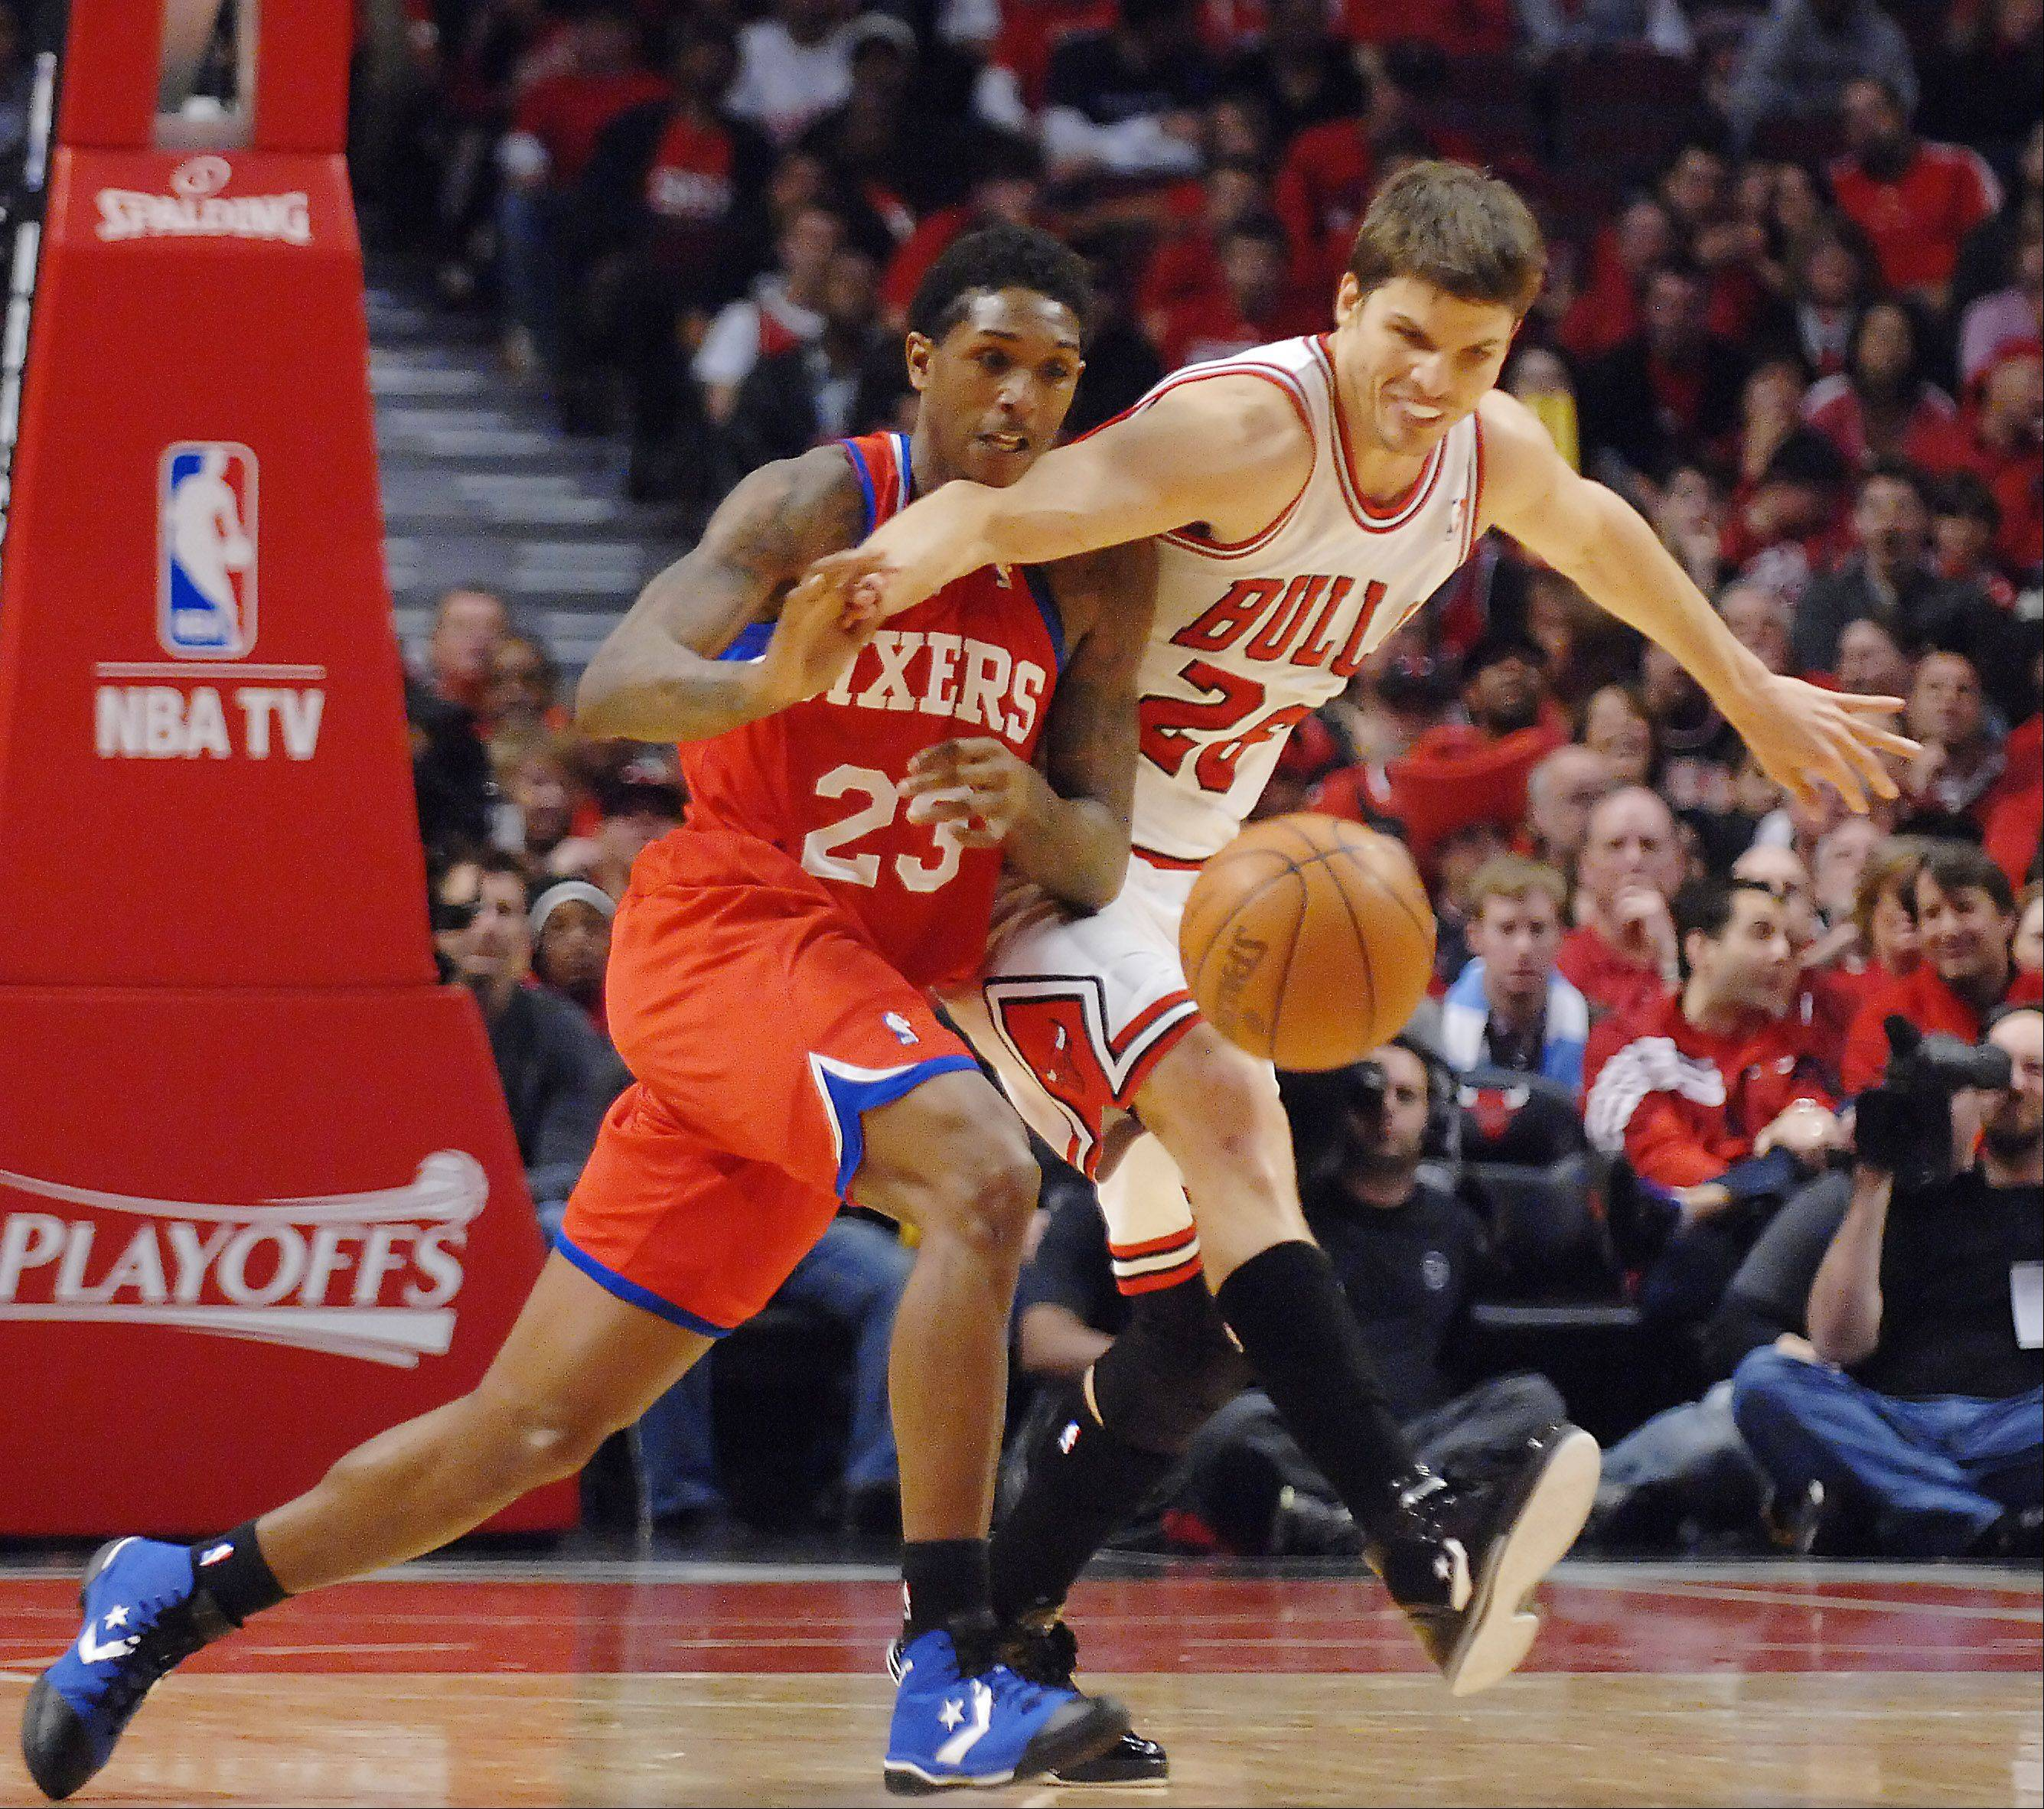 Philadelphia 76ers point guard Lou Williams steals the ball from Chicago Bulls small forward Kyle Korver.